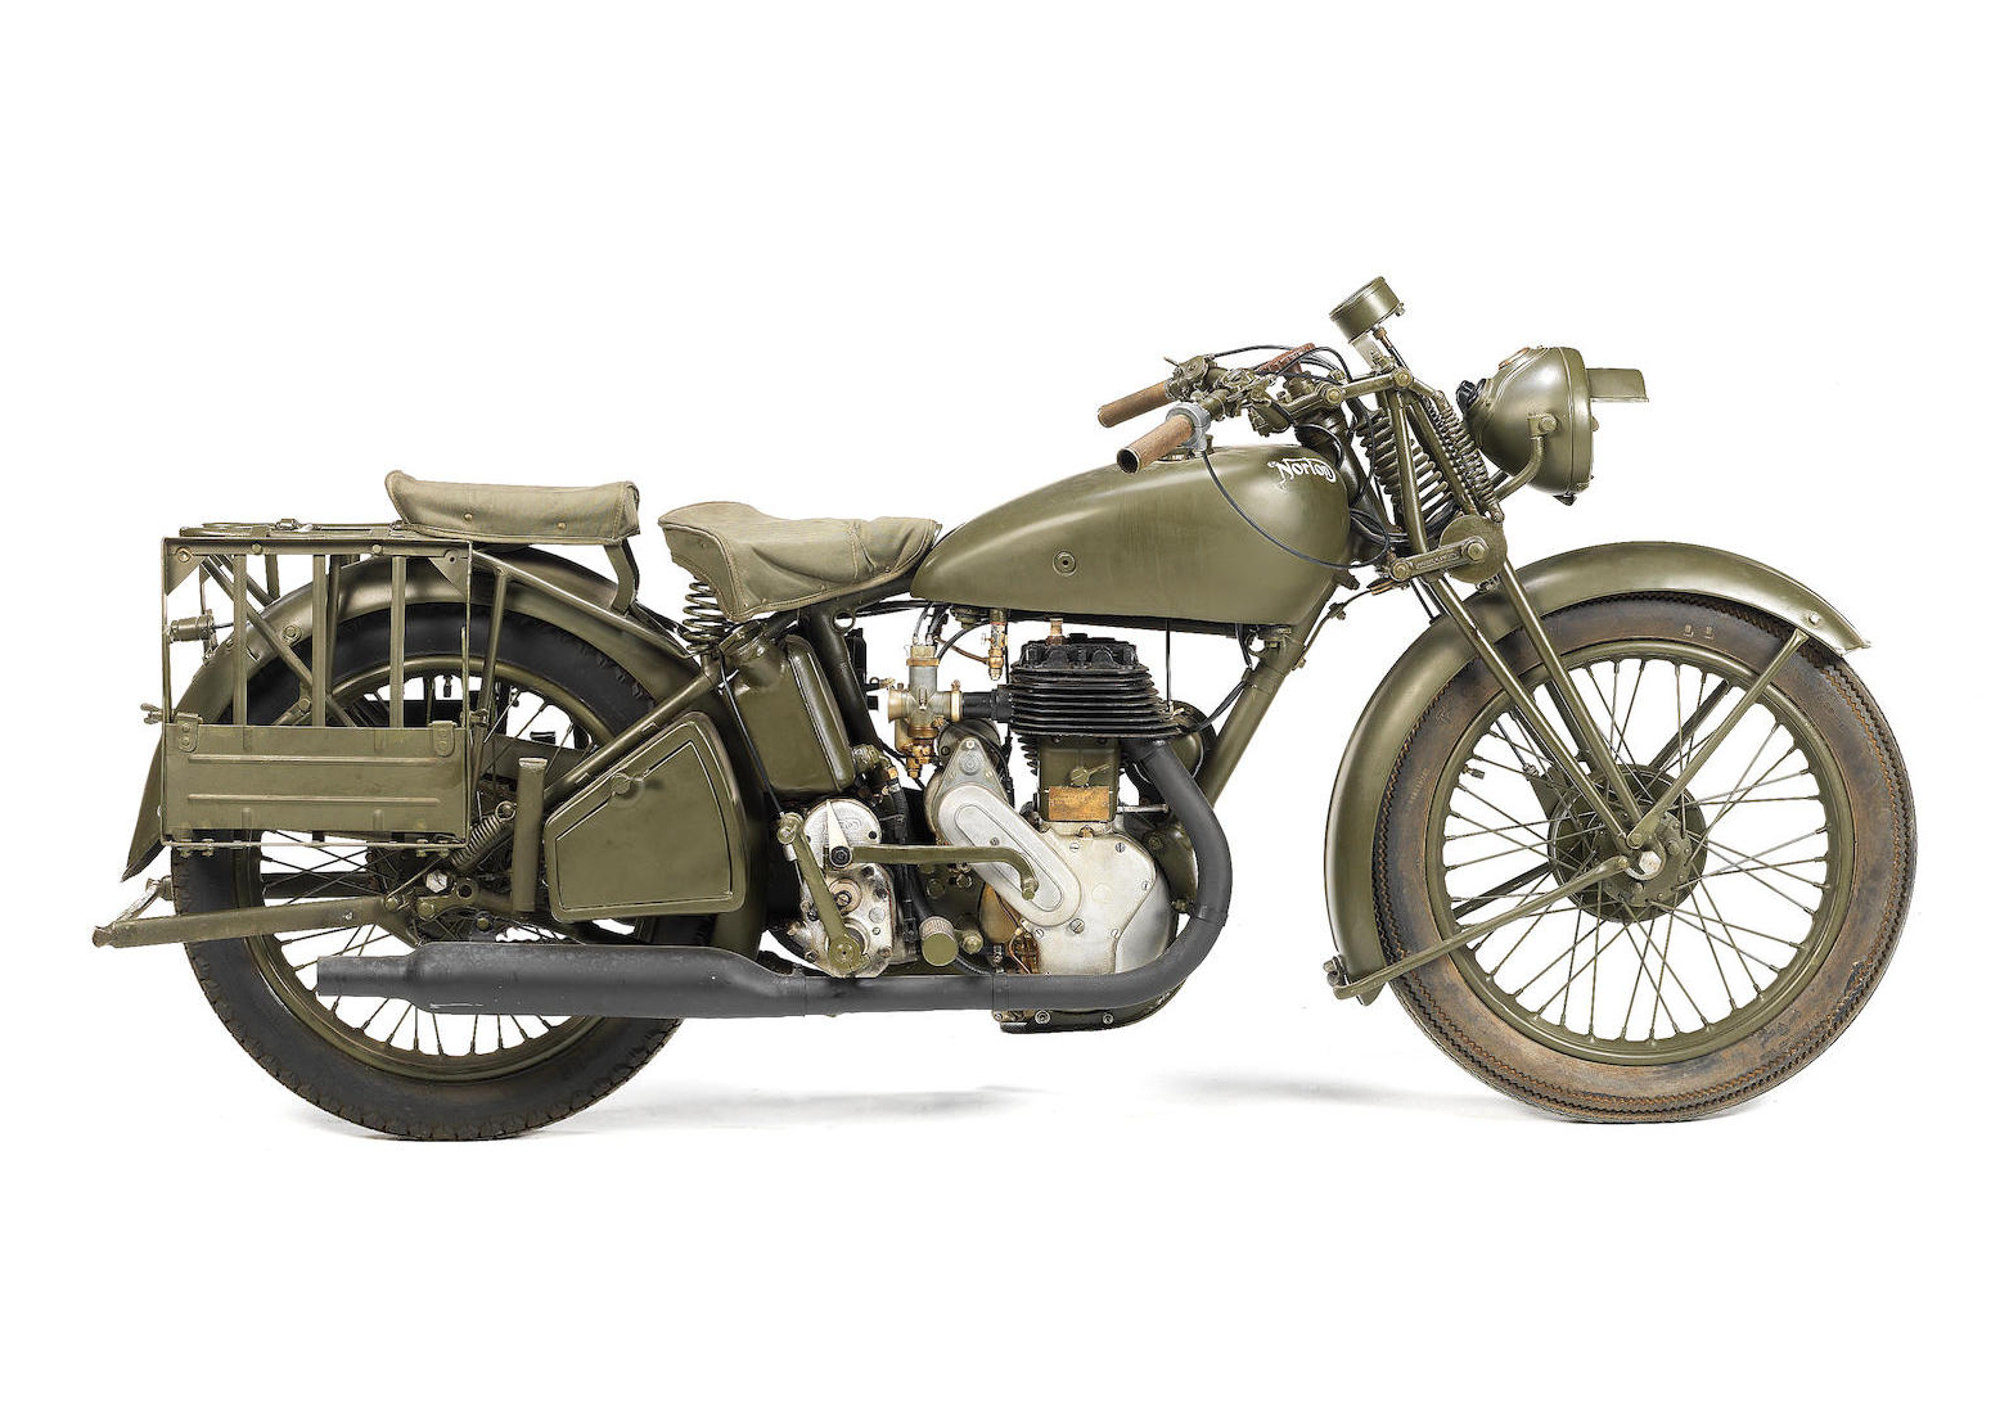 A Brief History of the Norton 16H - The World War II Workhorse